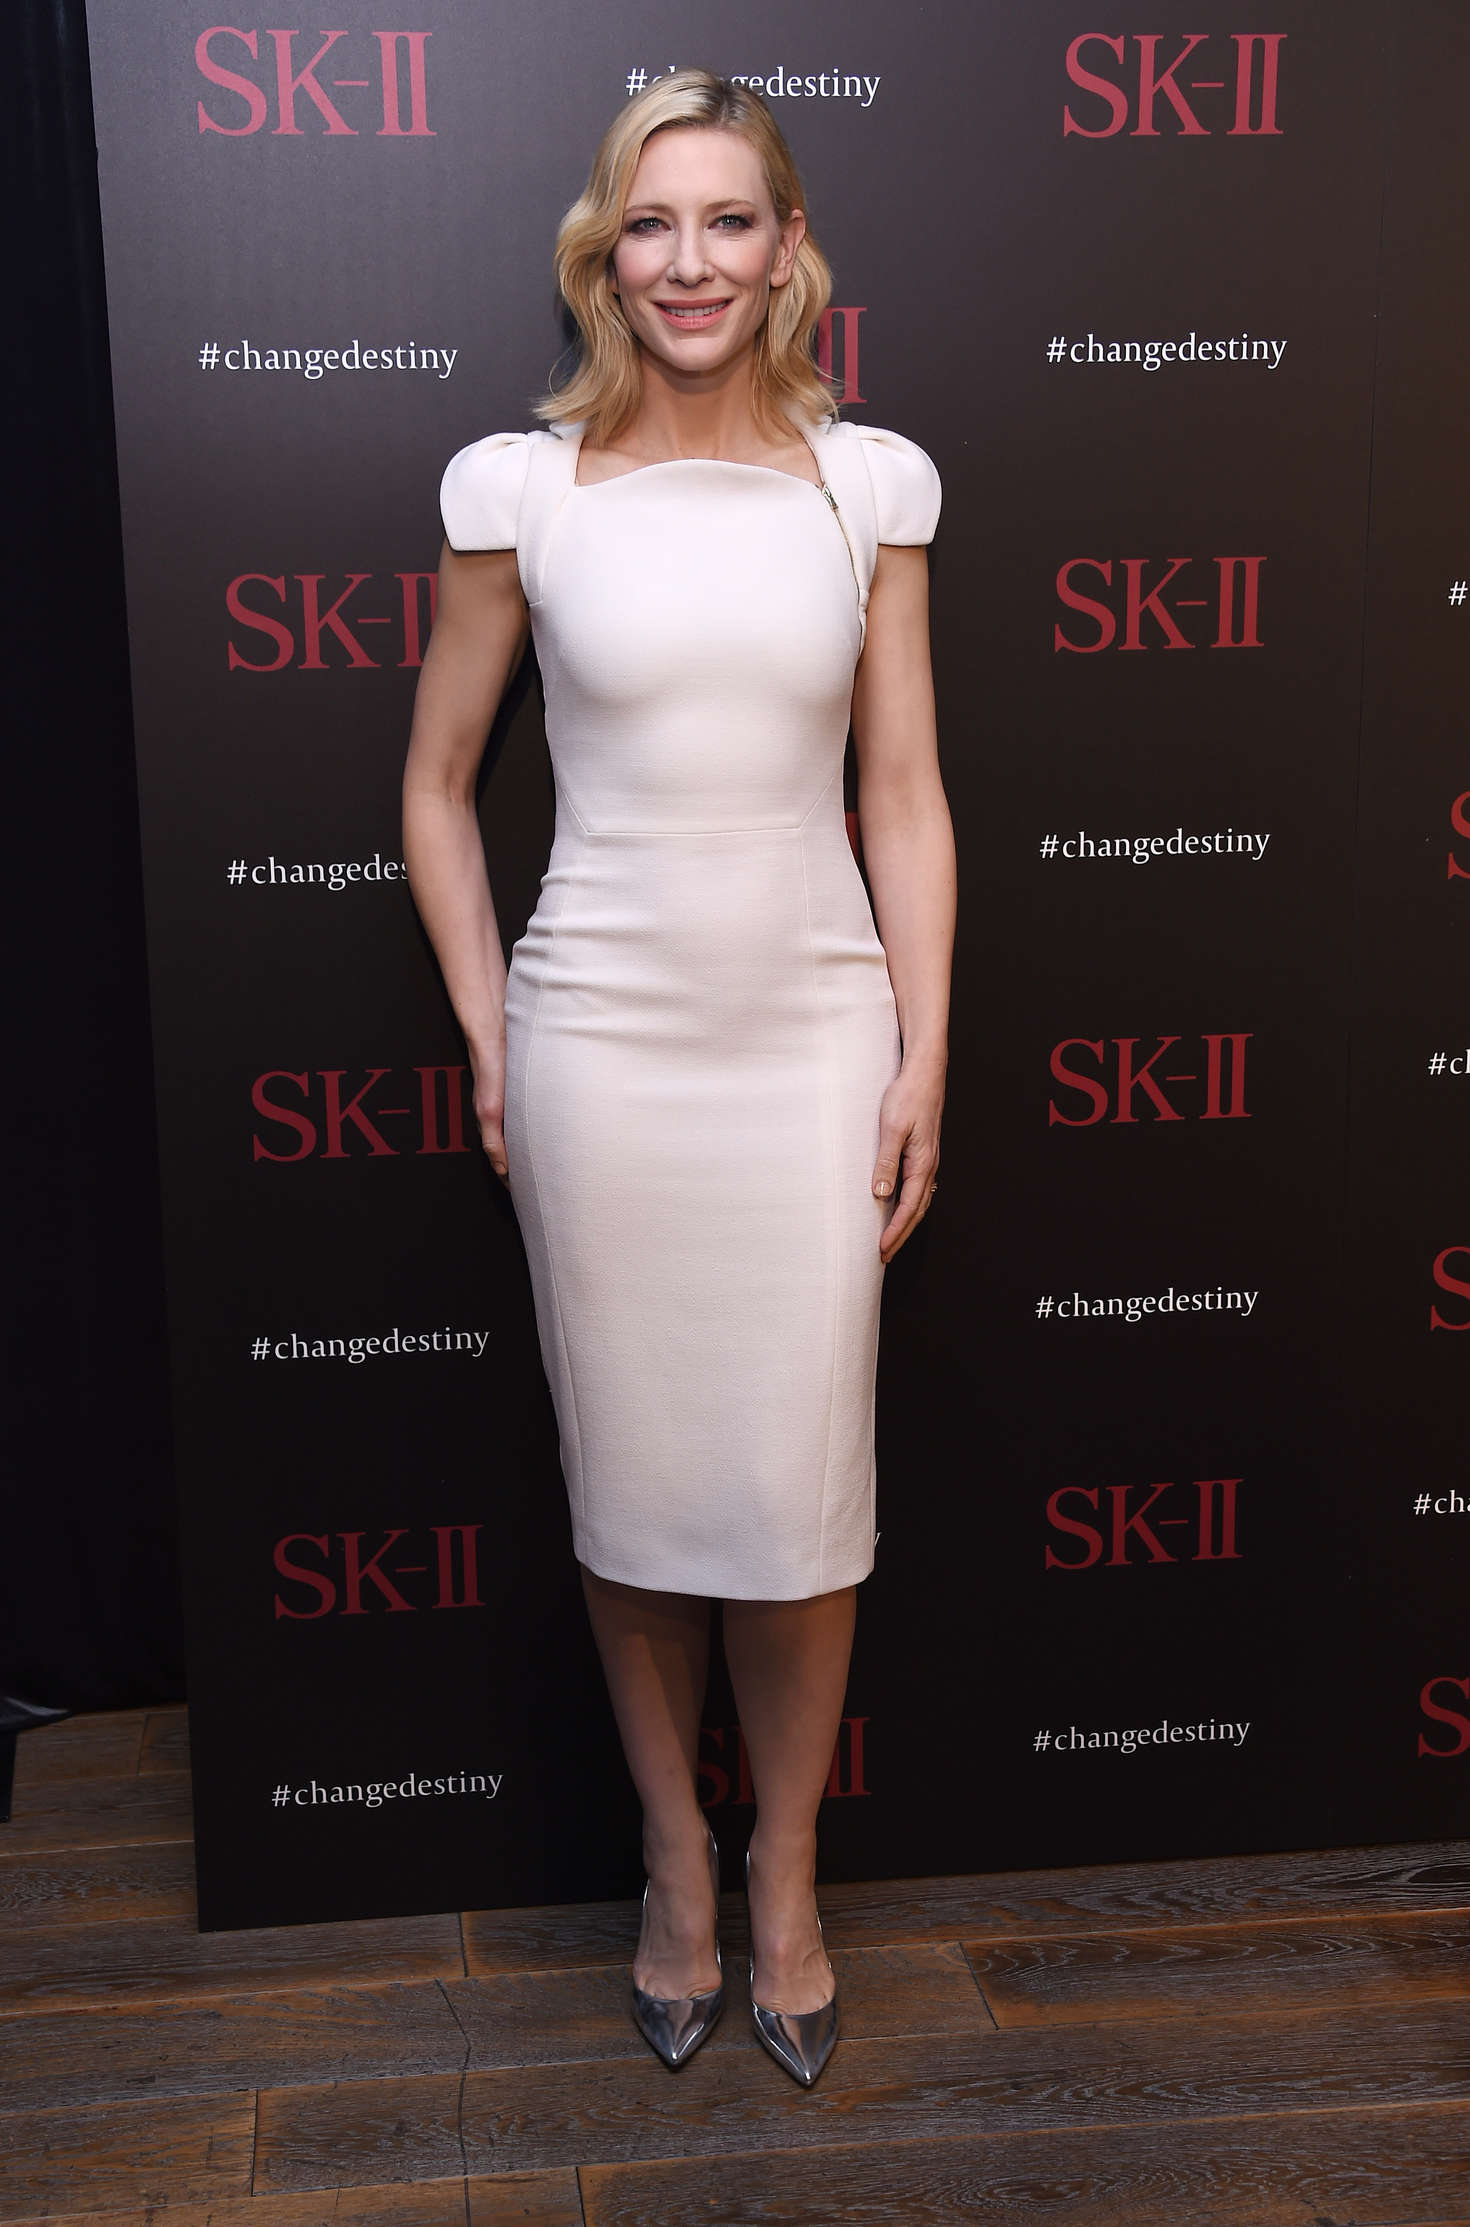 Cate Blanchett - SK-II ChangeDestiny Forum-Photocall in Los Angeles